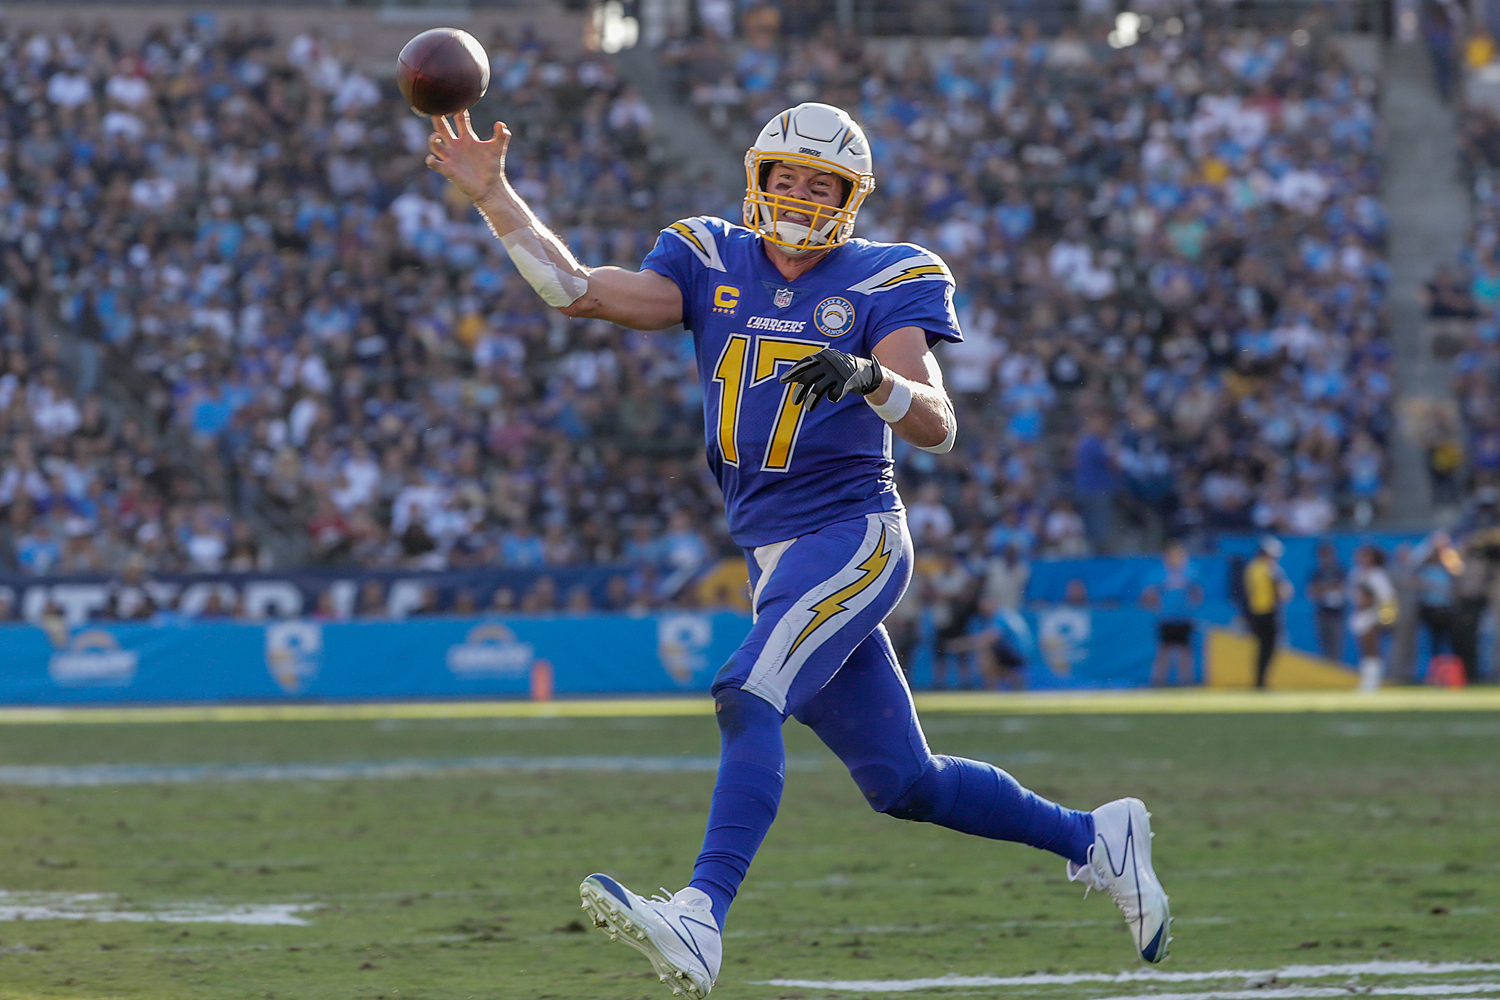 Los Angeles Chargers quarterback Philip Rivers rolls out to throw a 4-yard touchdown pass to Keenan Allen in the third quarter against the Arizona Cardinals on Nov. 25.